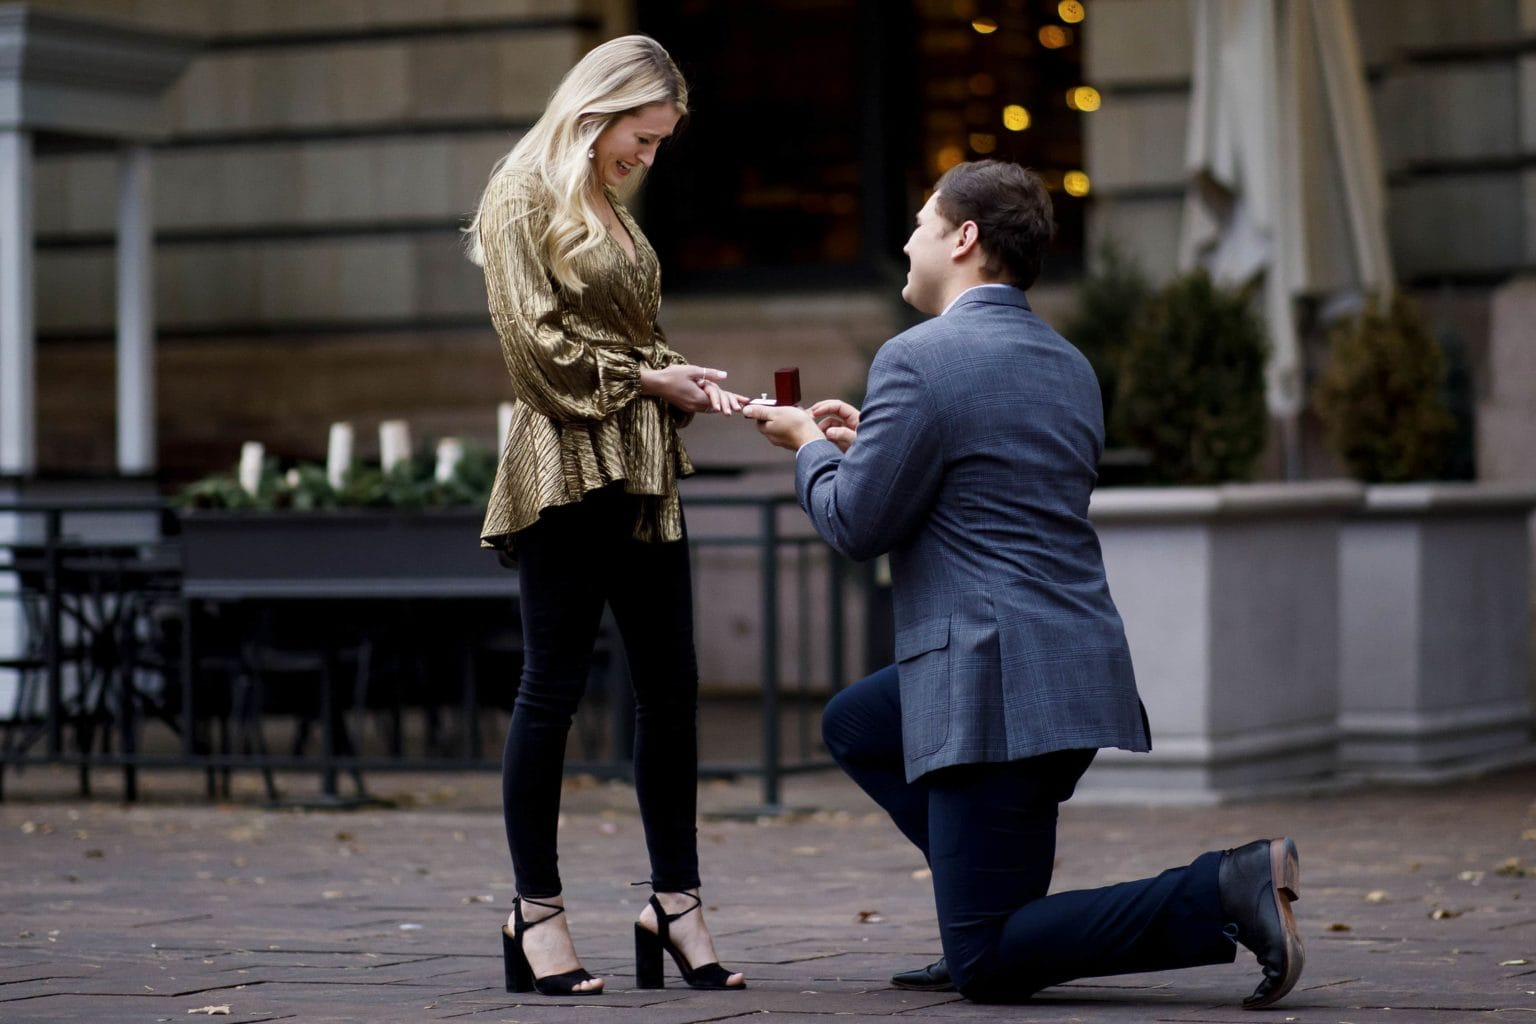 5 things to do when you get engaged